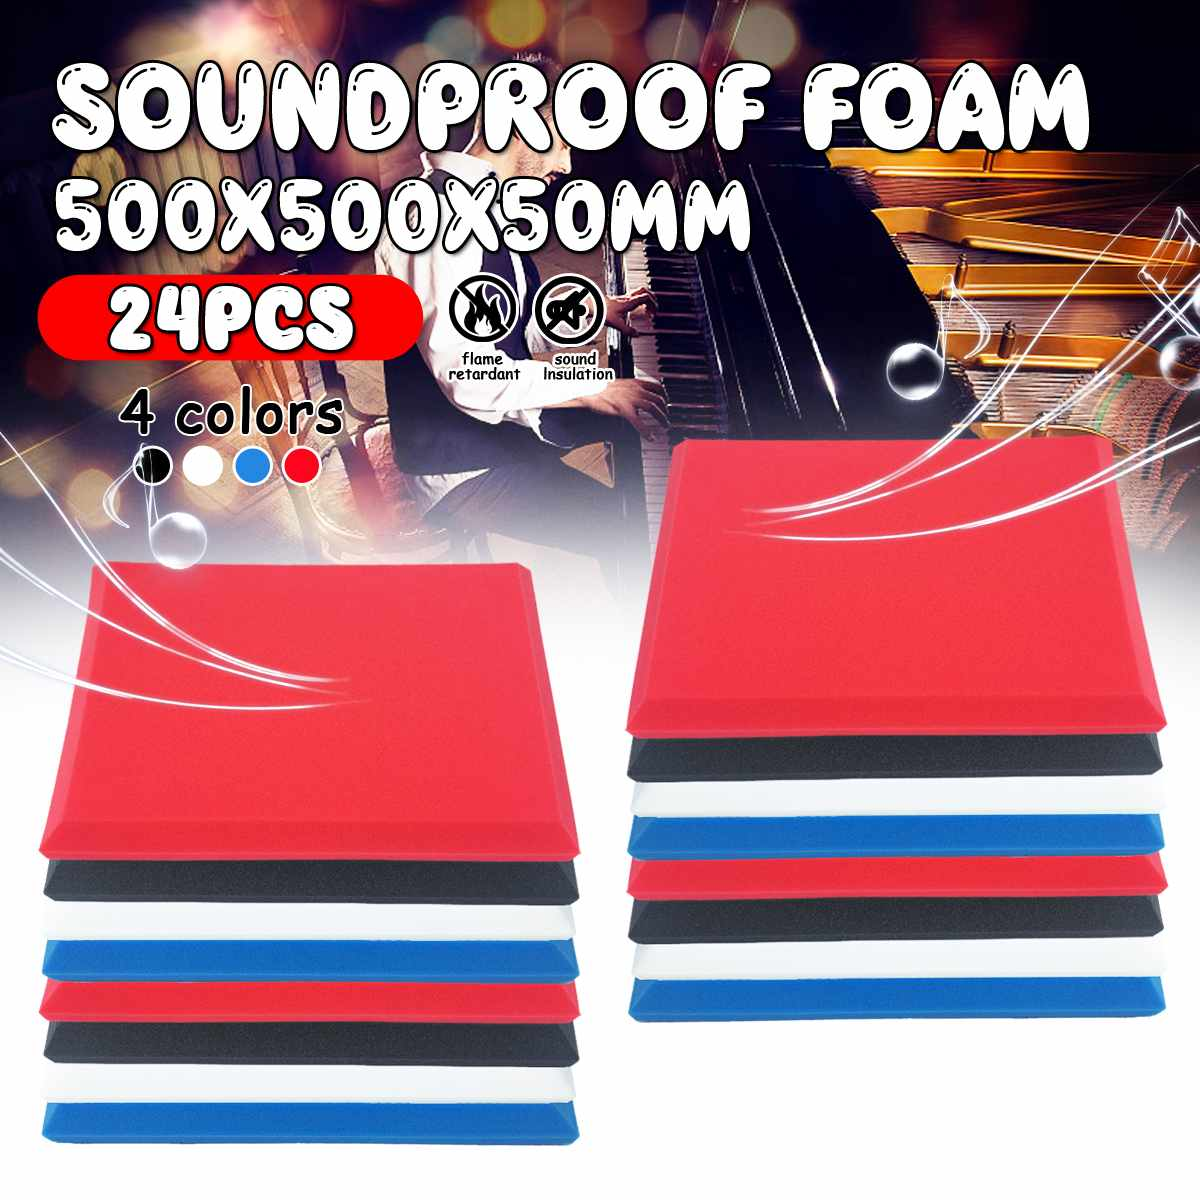 24PCs 50x50x5cm Studio Acoustic Soundproof Foam Sound Absorption Treatment Panel Tile Wedge Protective Sponge 4 Colors